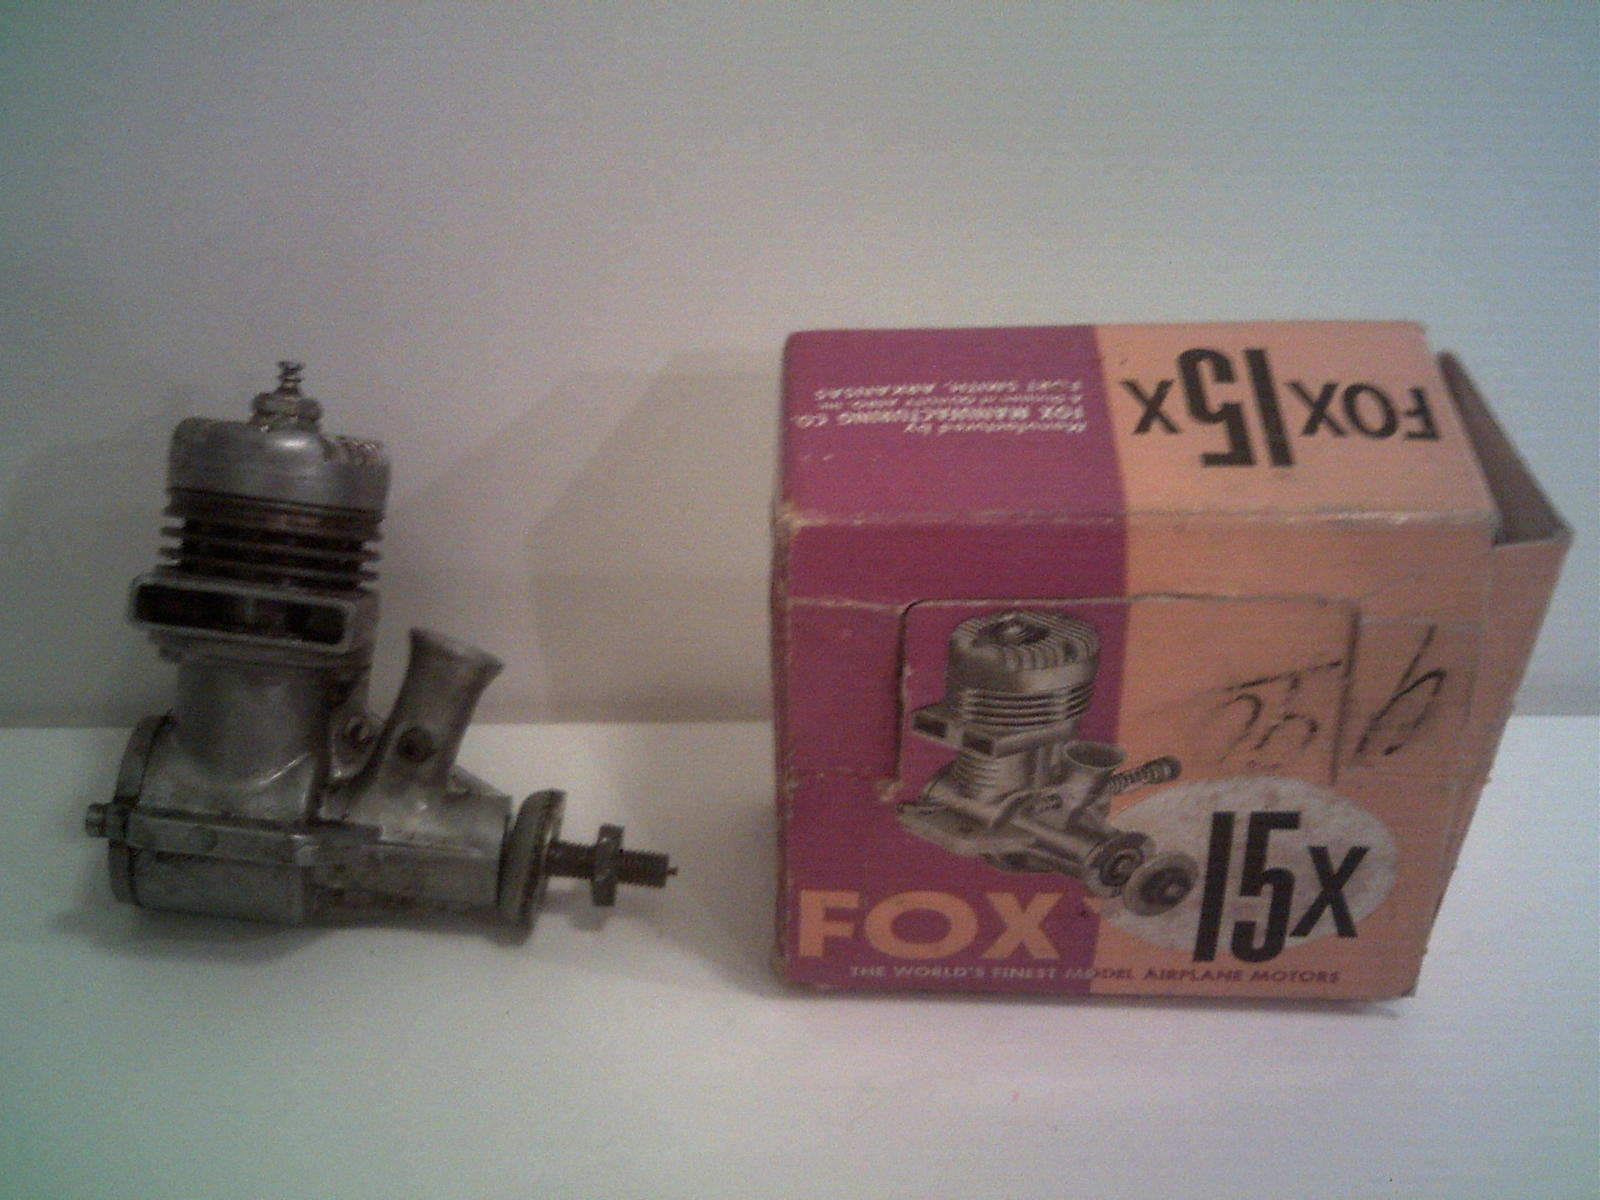 FOX 15 NIB with New needle Valve included.